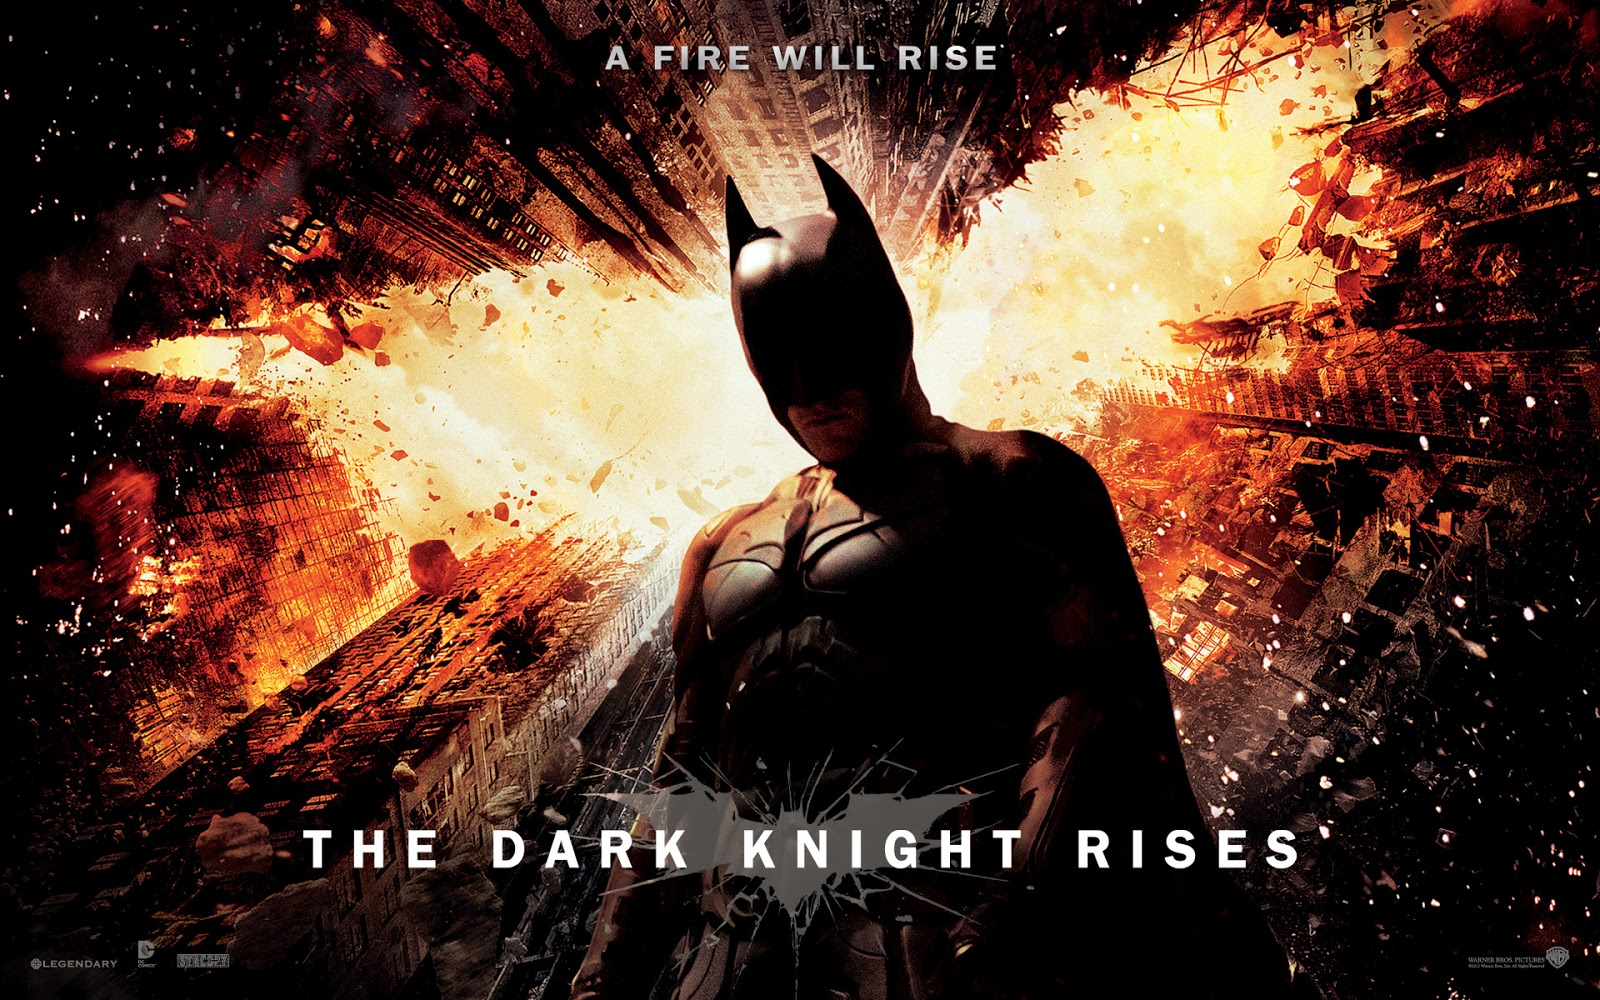 the dark knight rises full movie putlocker